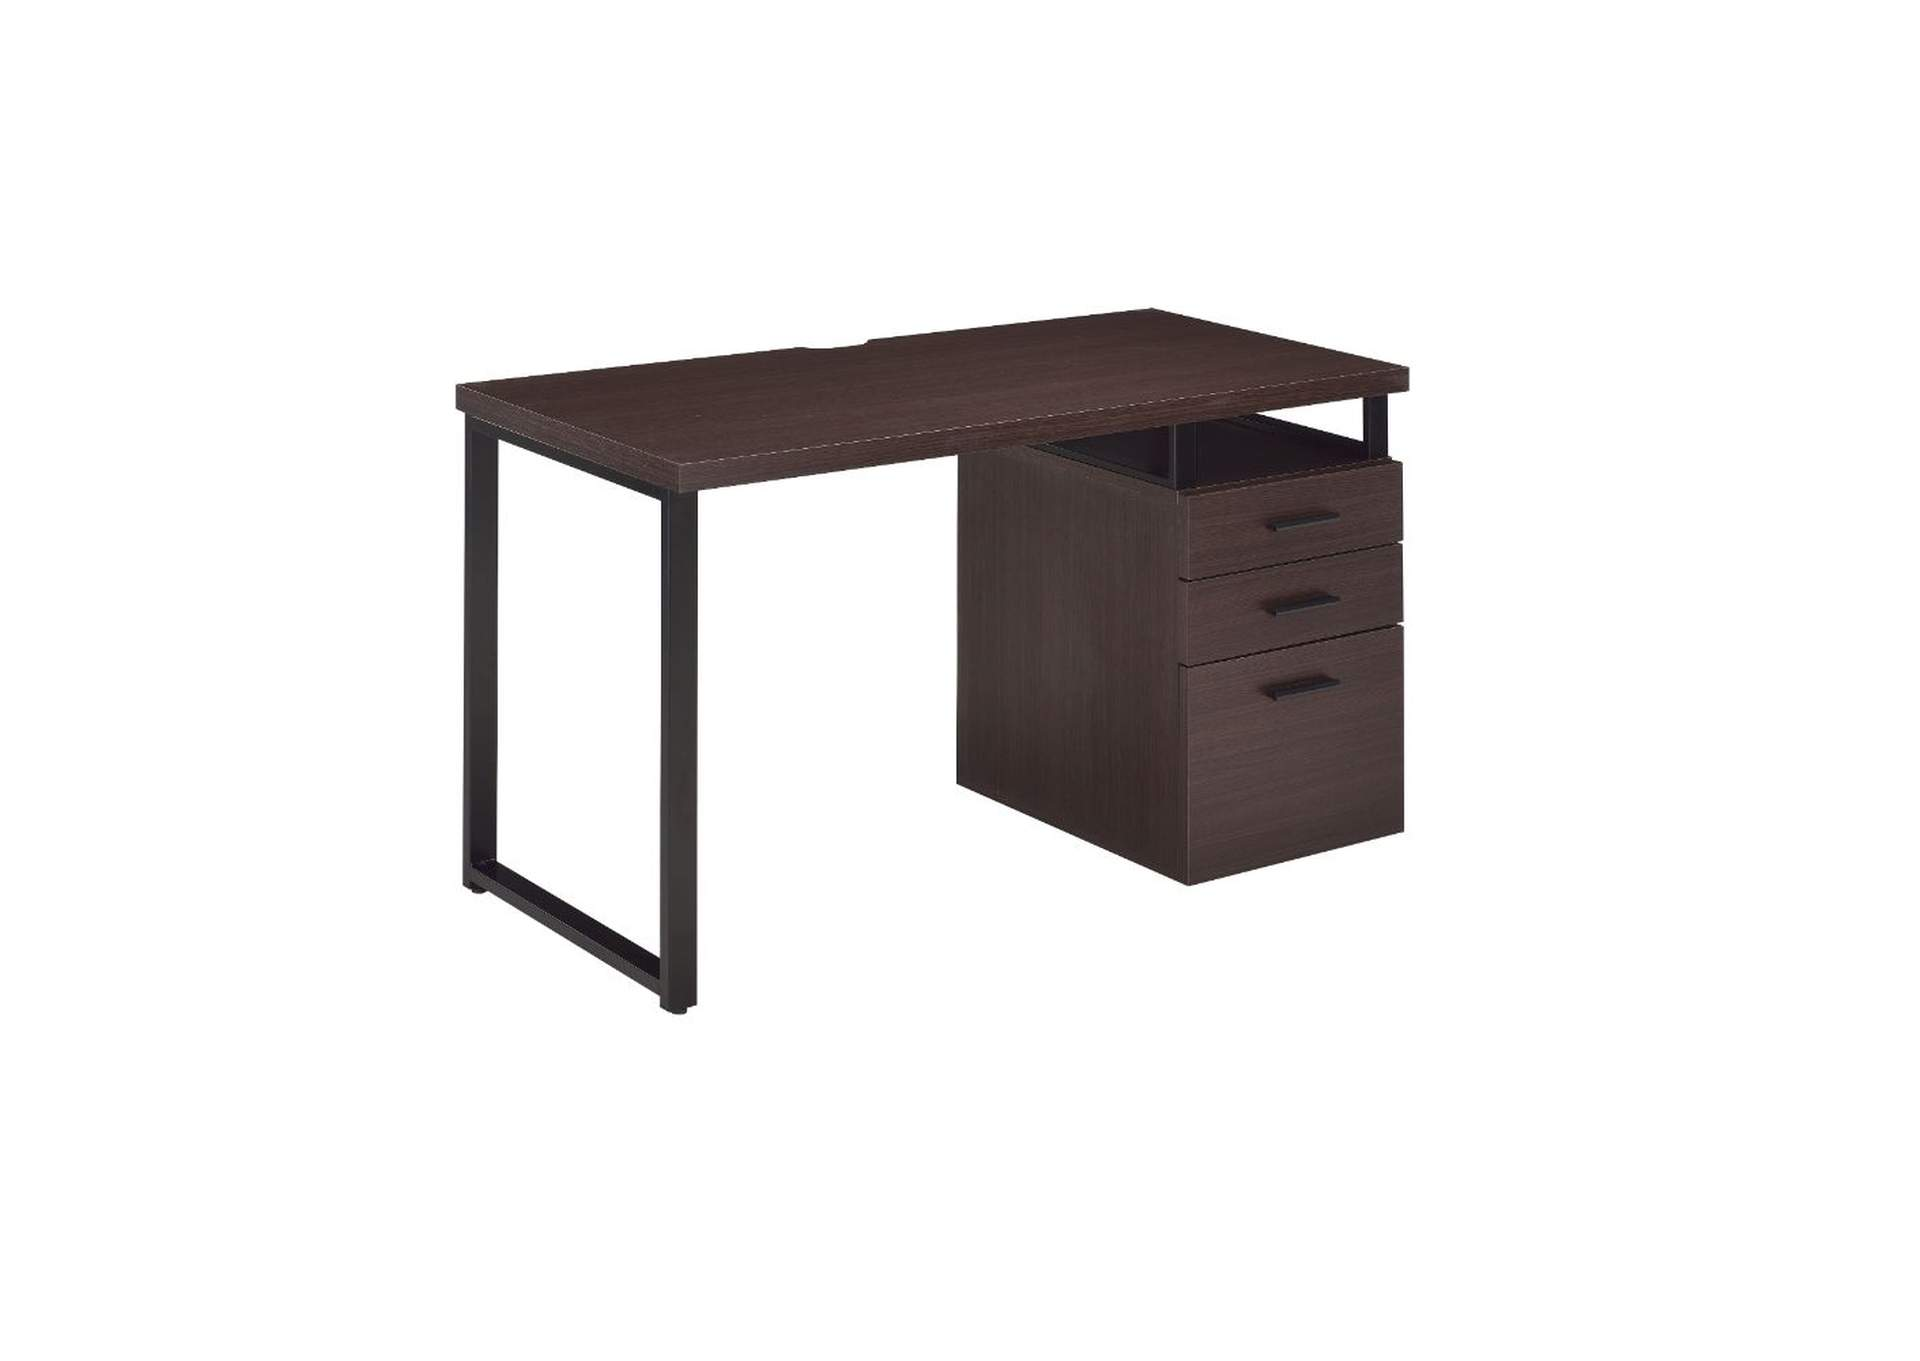 Coy Dark Oak Desk,Acme